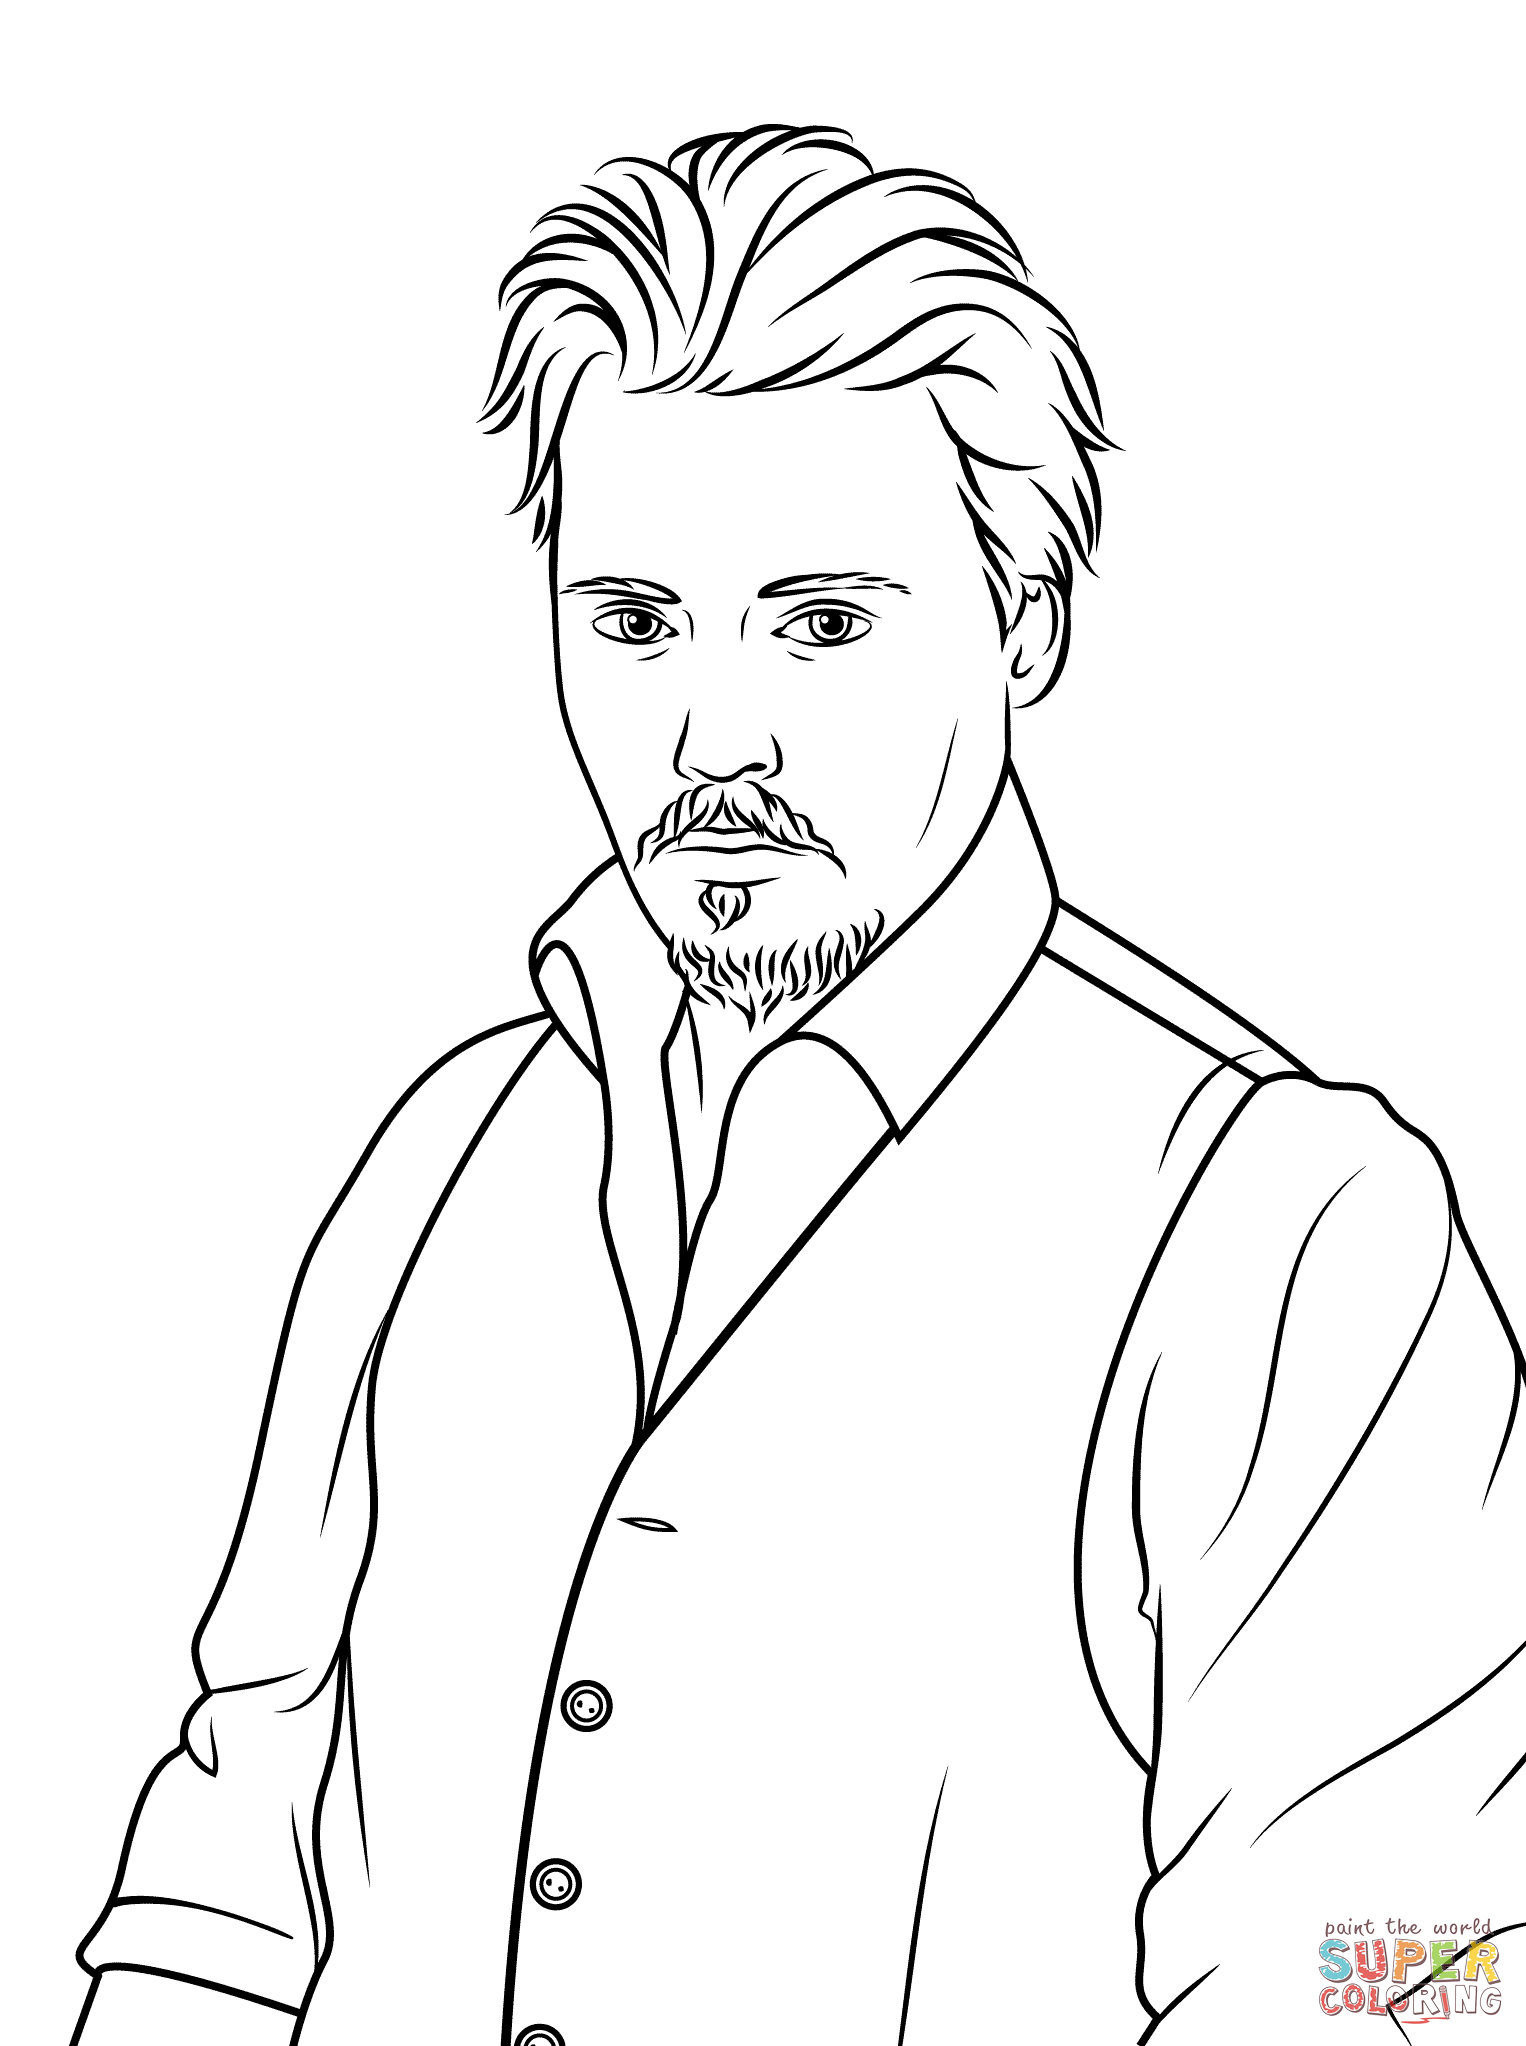 charlie and the chocolate factory coloring sheets charlie and the chocolate factory coloring pages printable sheets and charlie coloring chocolate factory the